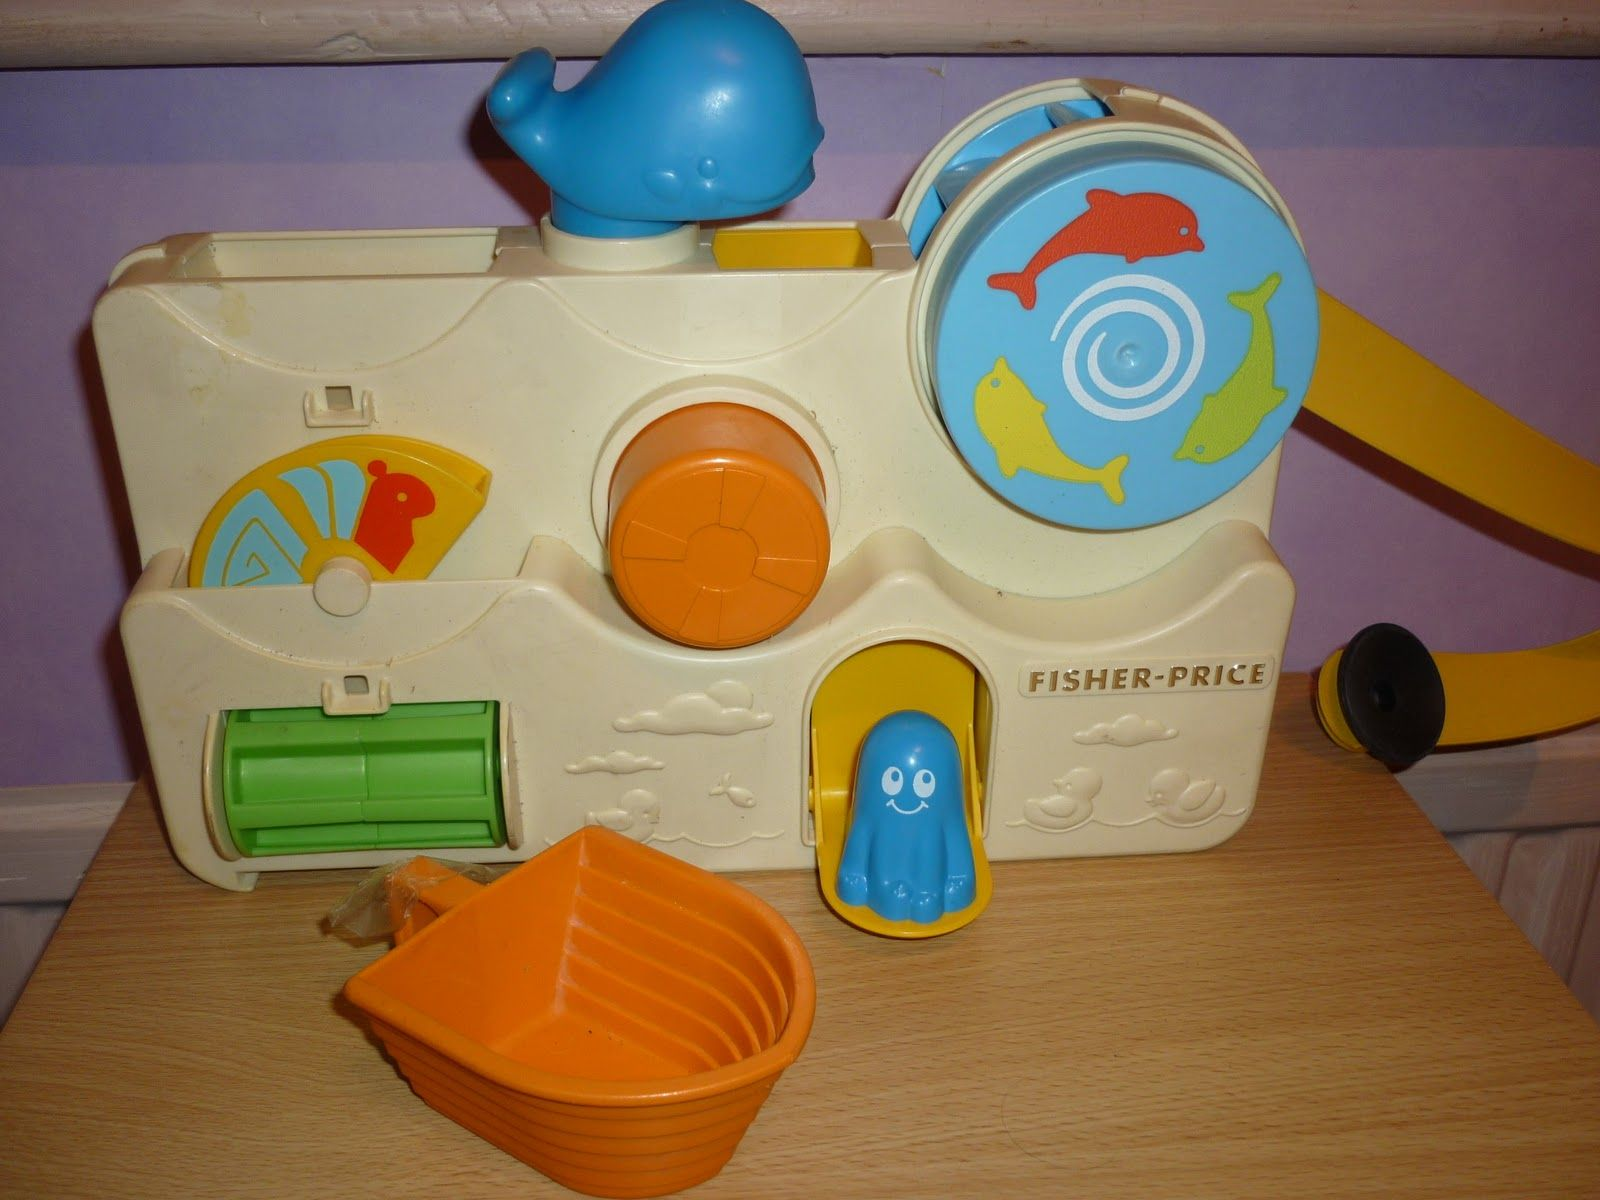 Fisher Price bath toy. It had suction cups to hang on the bathtub ...